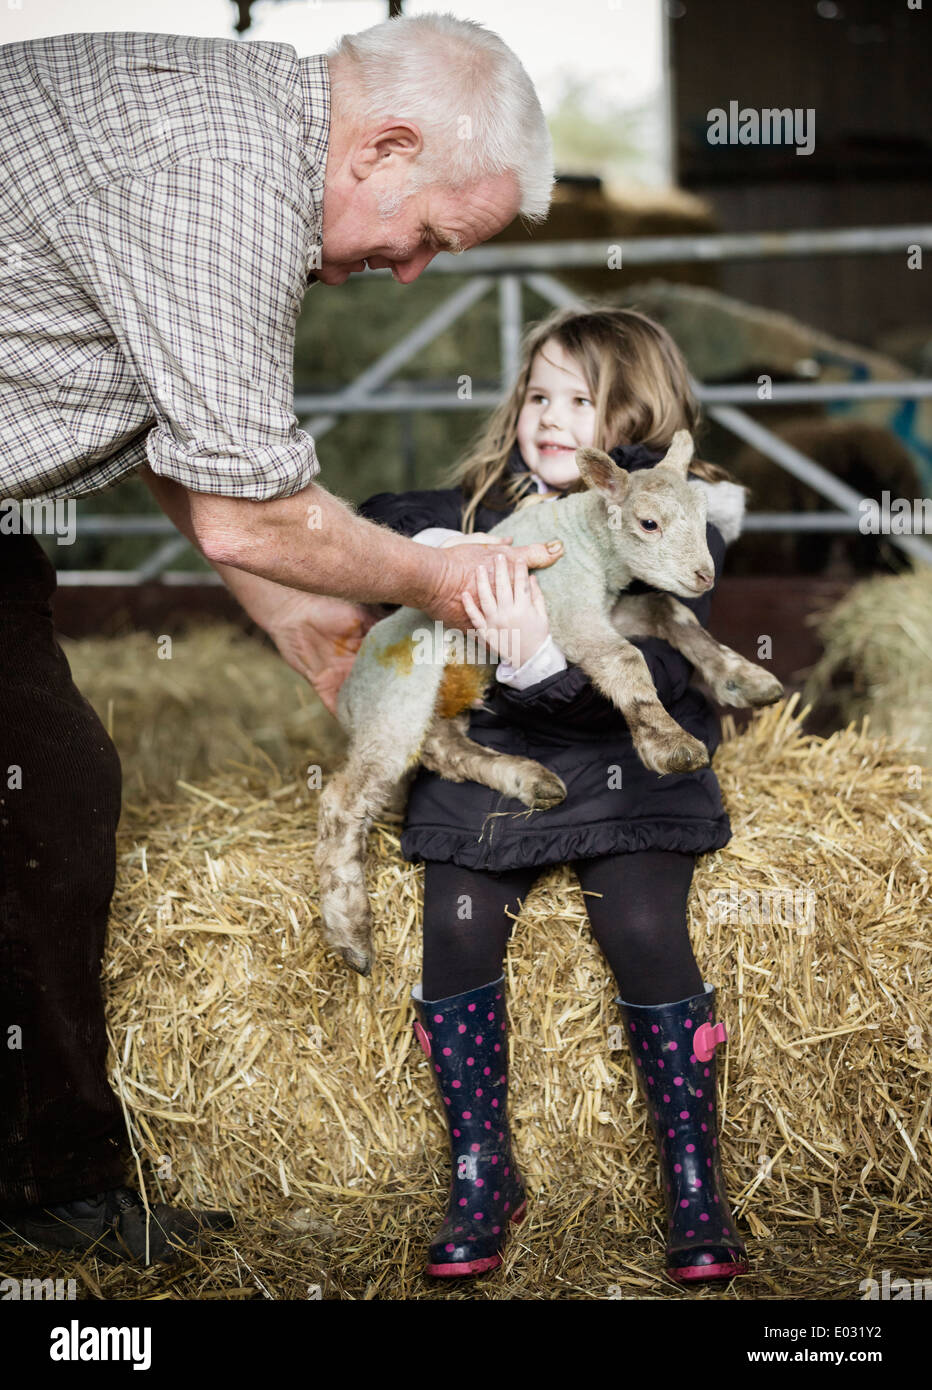 A girl holding a small new-born lamb. - Stock Image